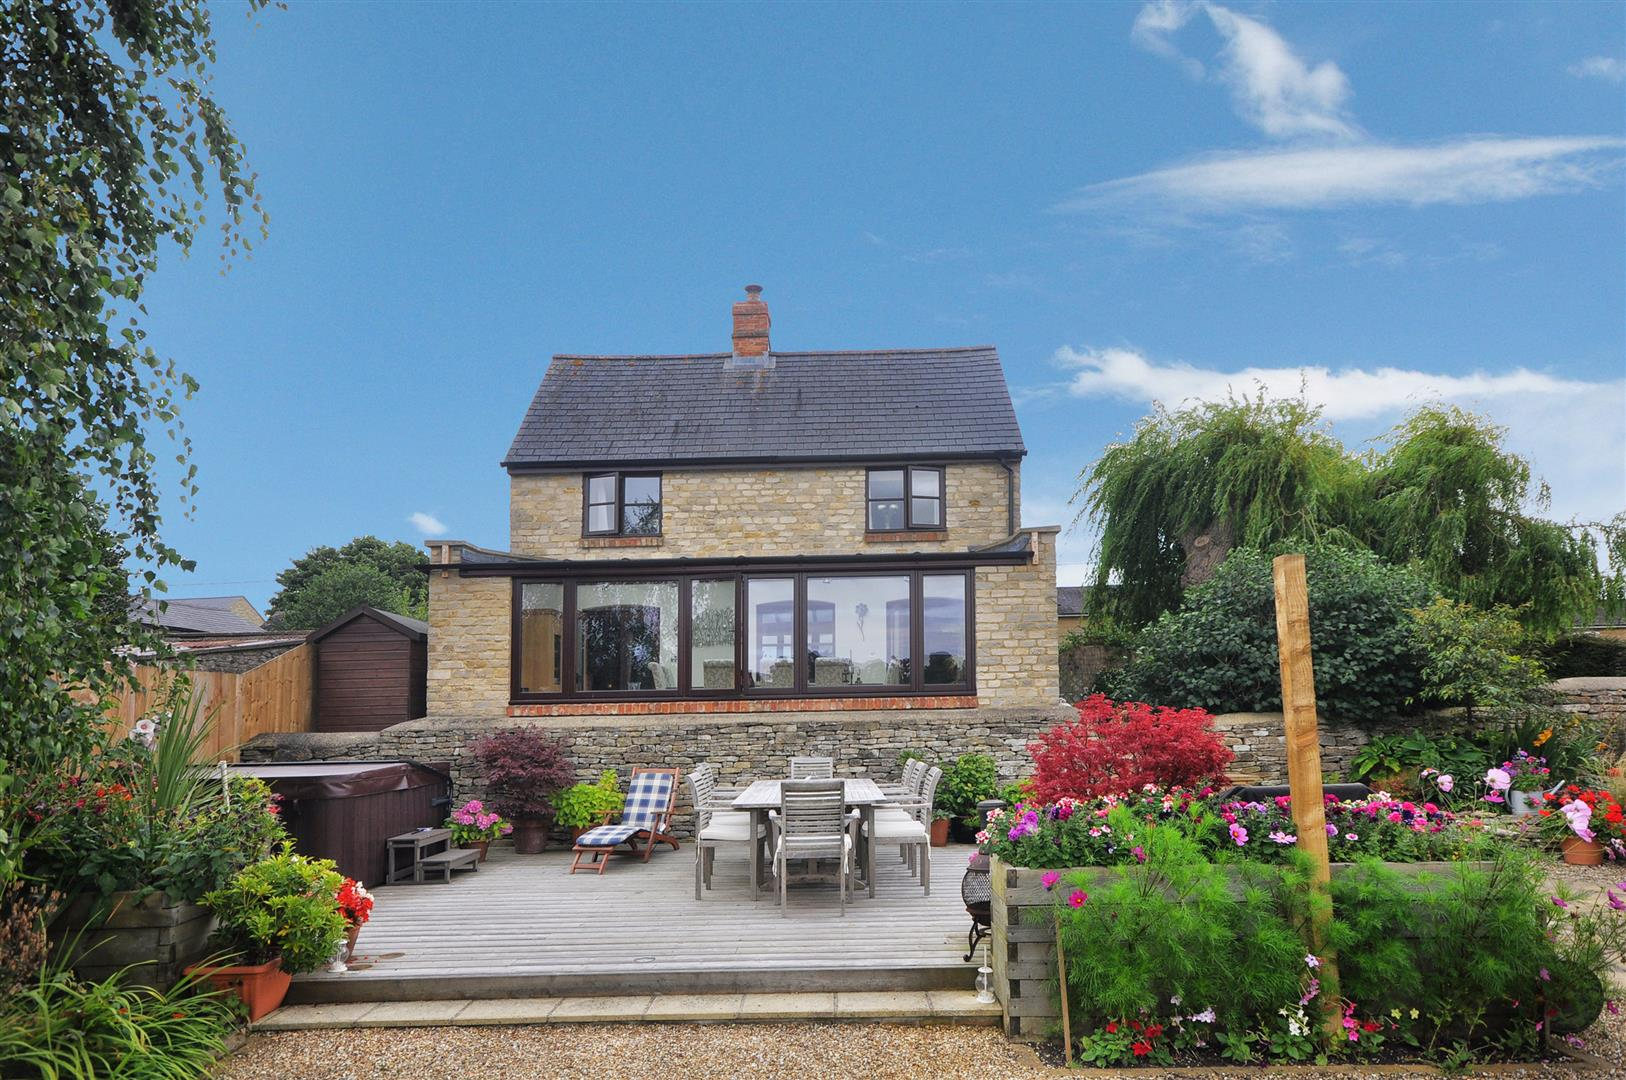 4 Bedroom Detached House For Sale In Fritwell